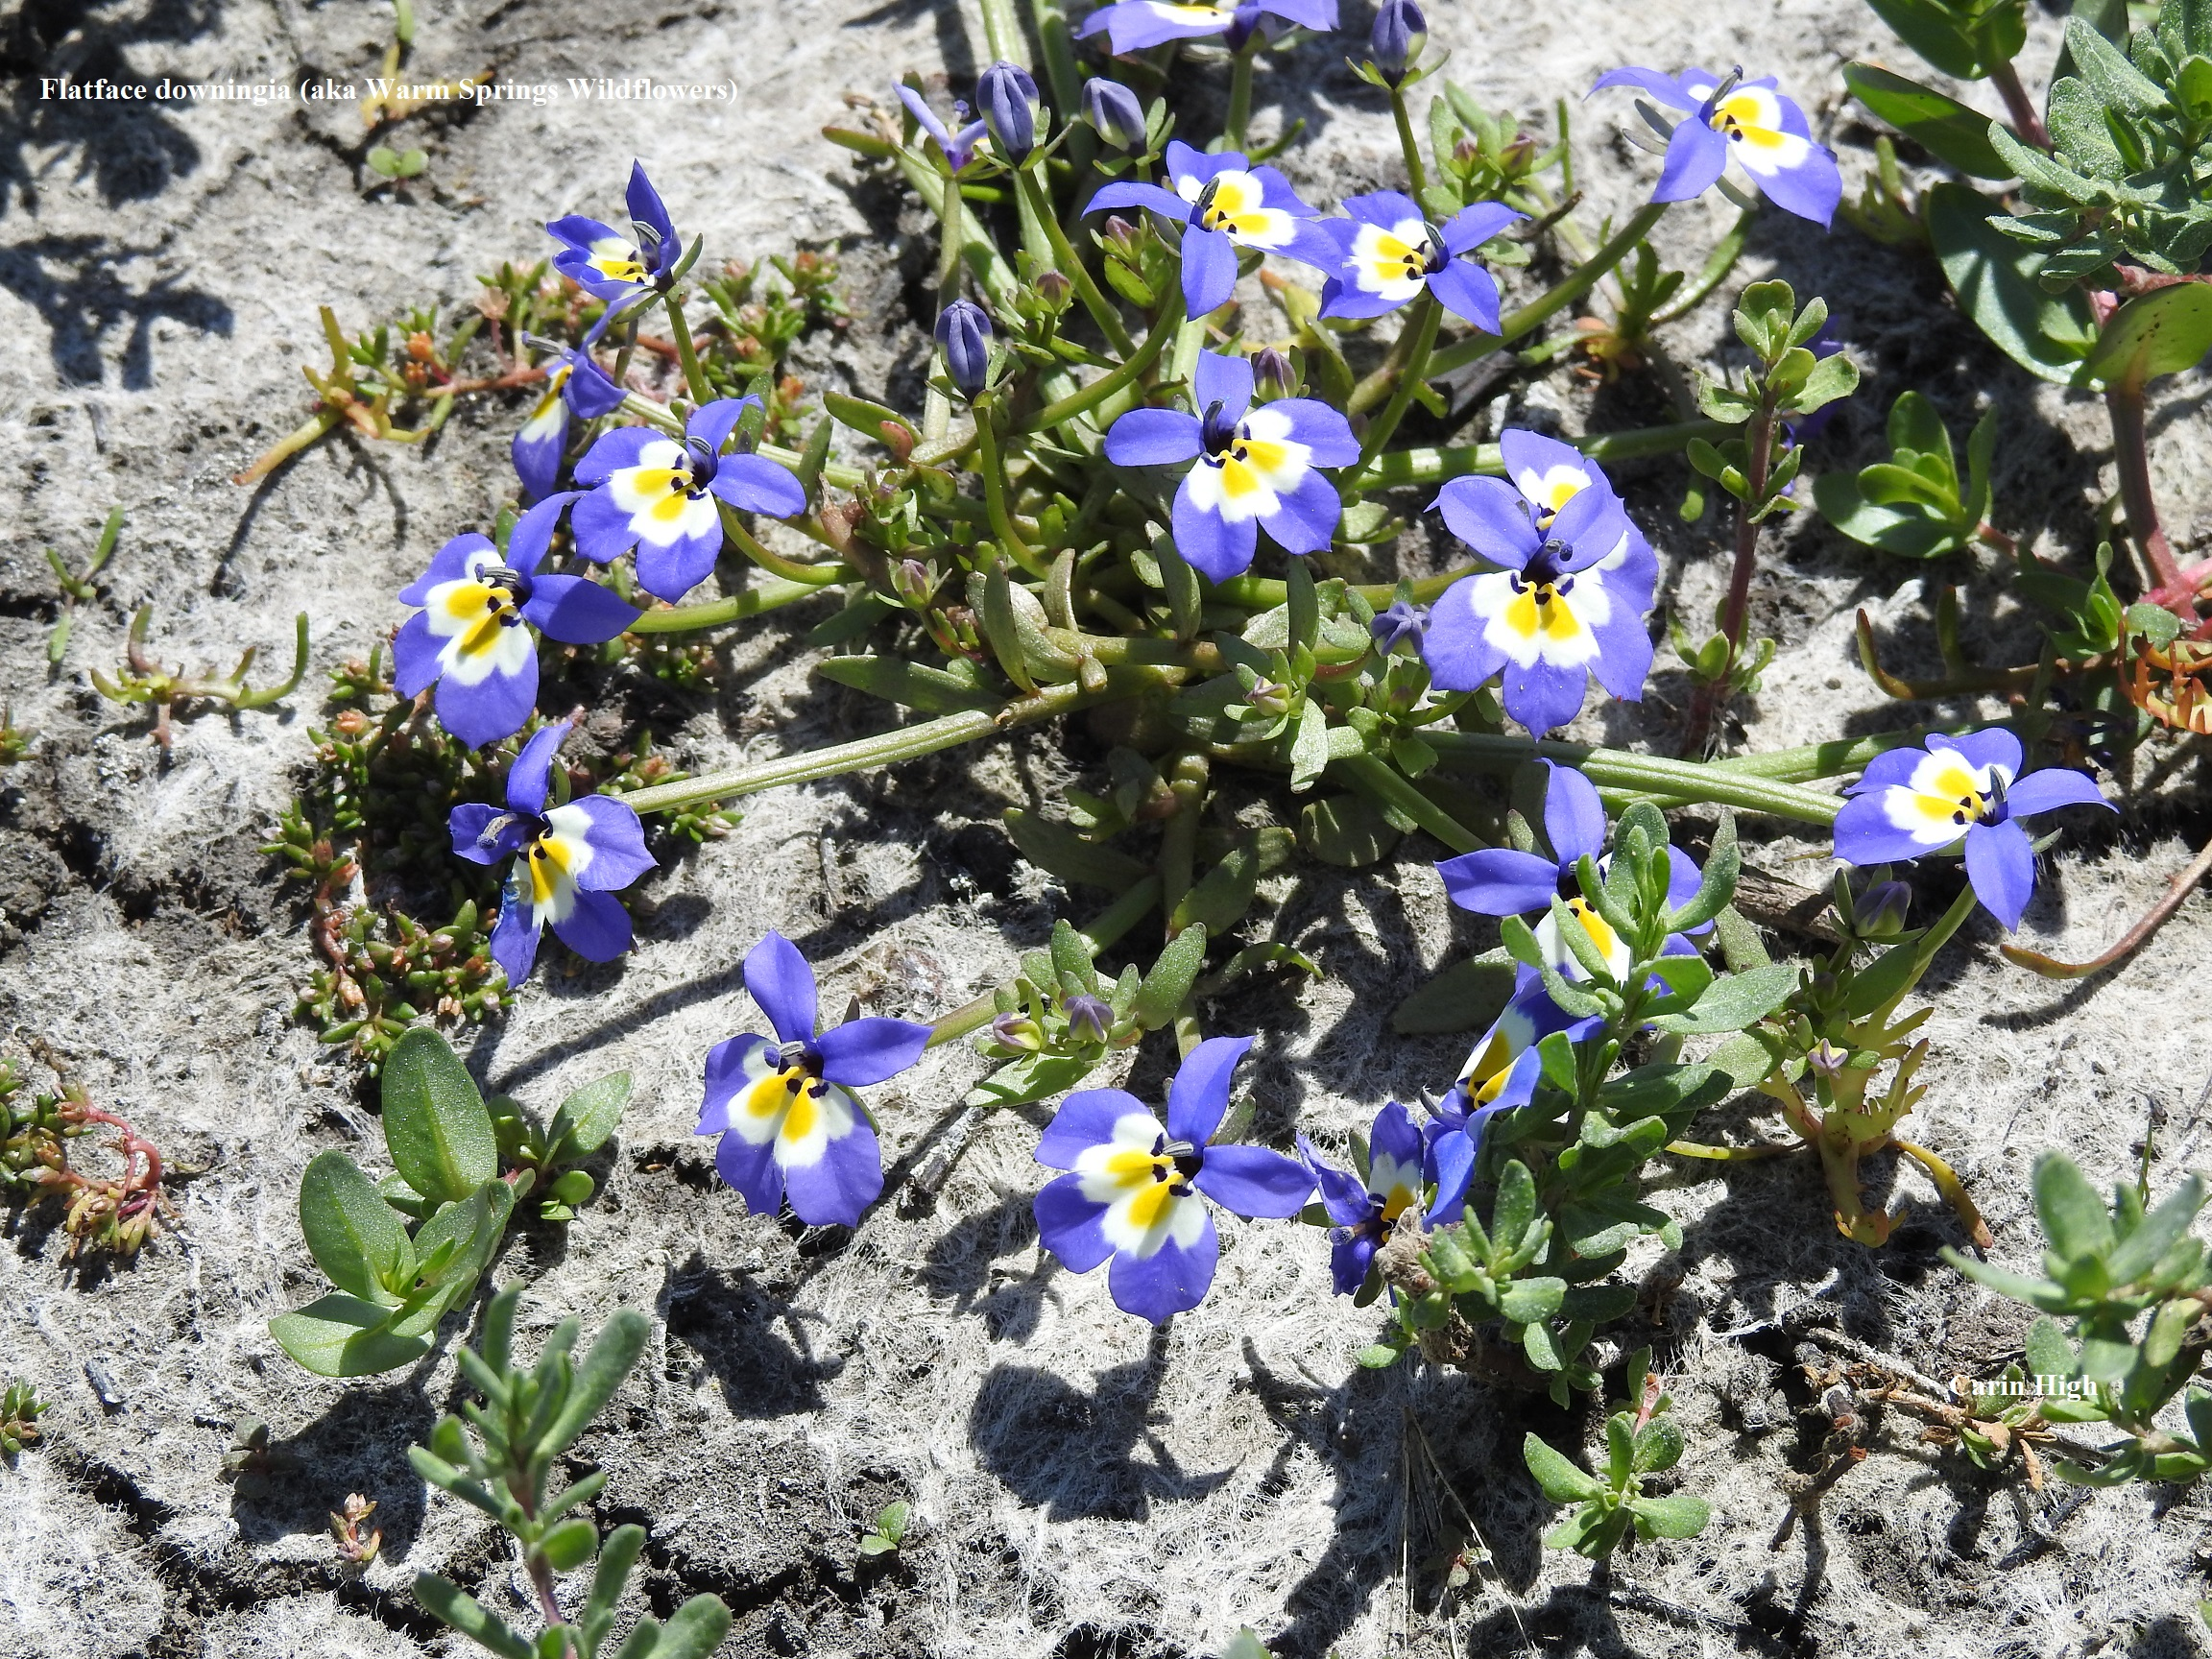 1 Flatface downingia aka Warm Springs Wildflowers Carin High